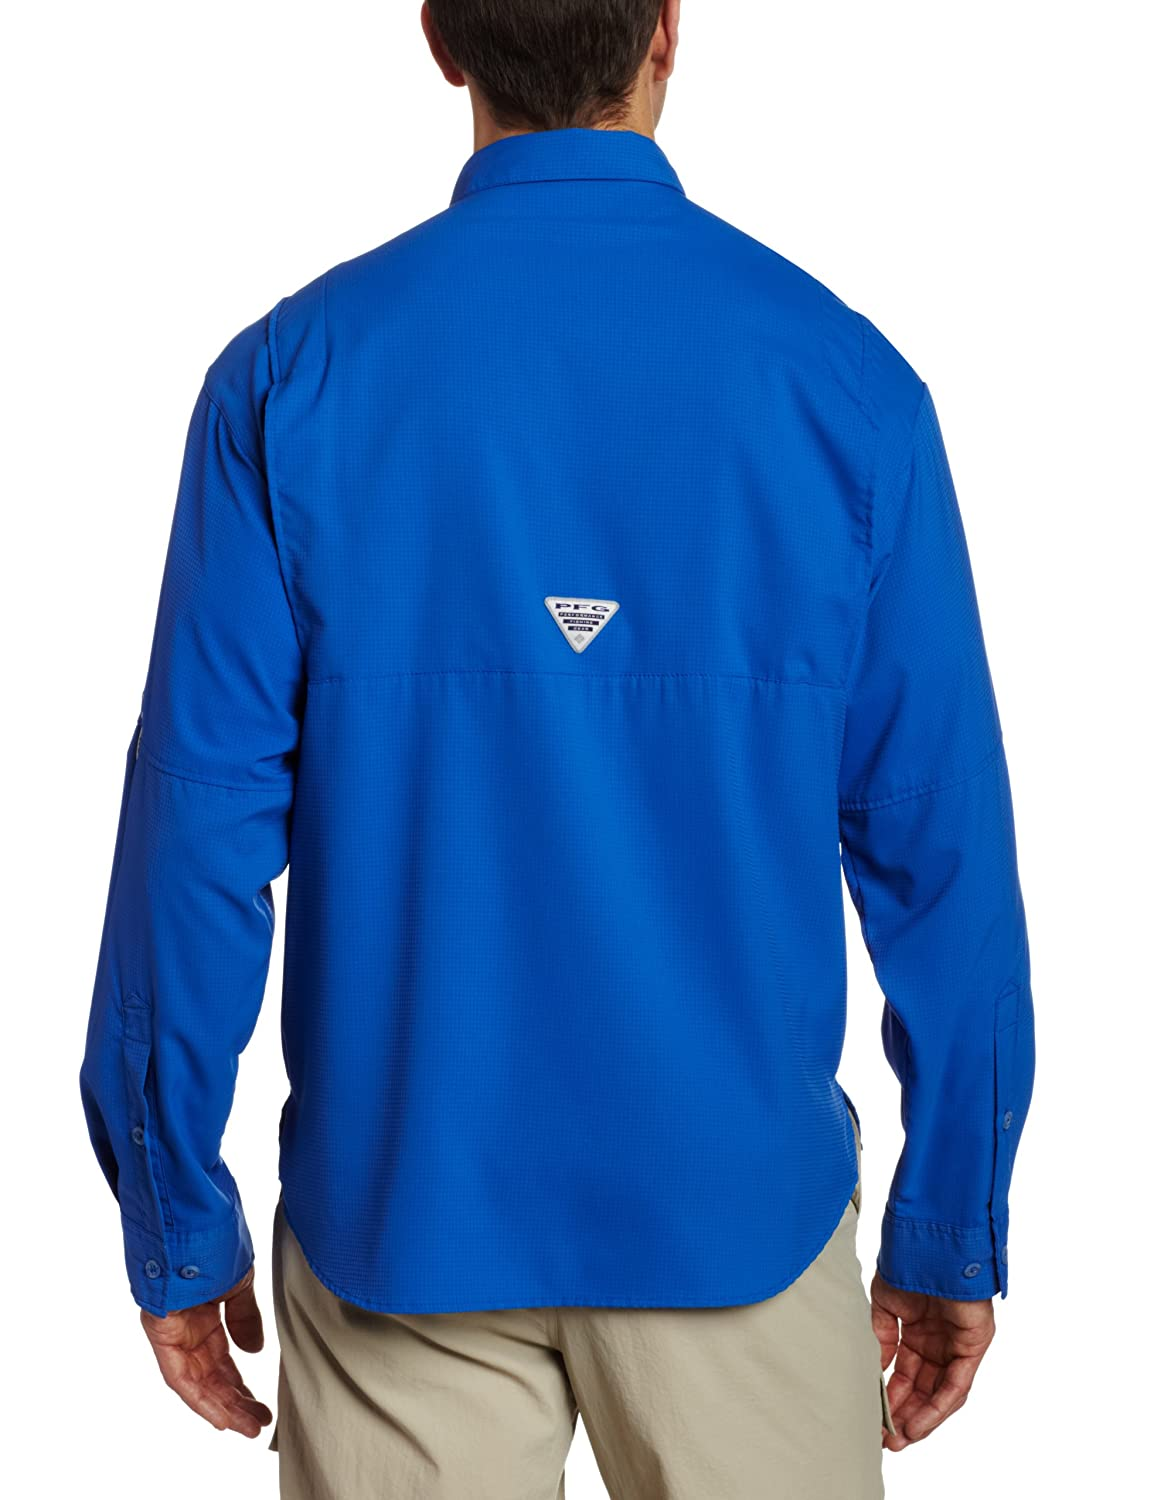 bf4a37a01c3 Columbia Men's Plus Tamiami II Long Sleeve Shirt, Vivid Blue - X-Small:  Amazon.in: Sports, Fitness & Outdoors